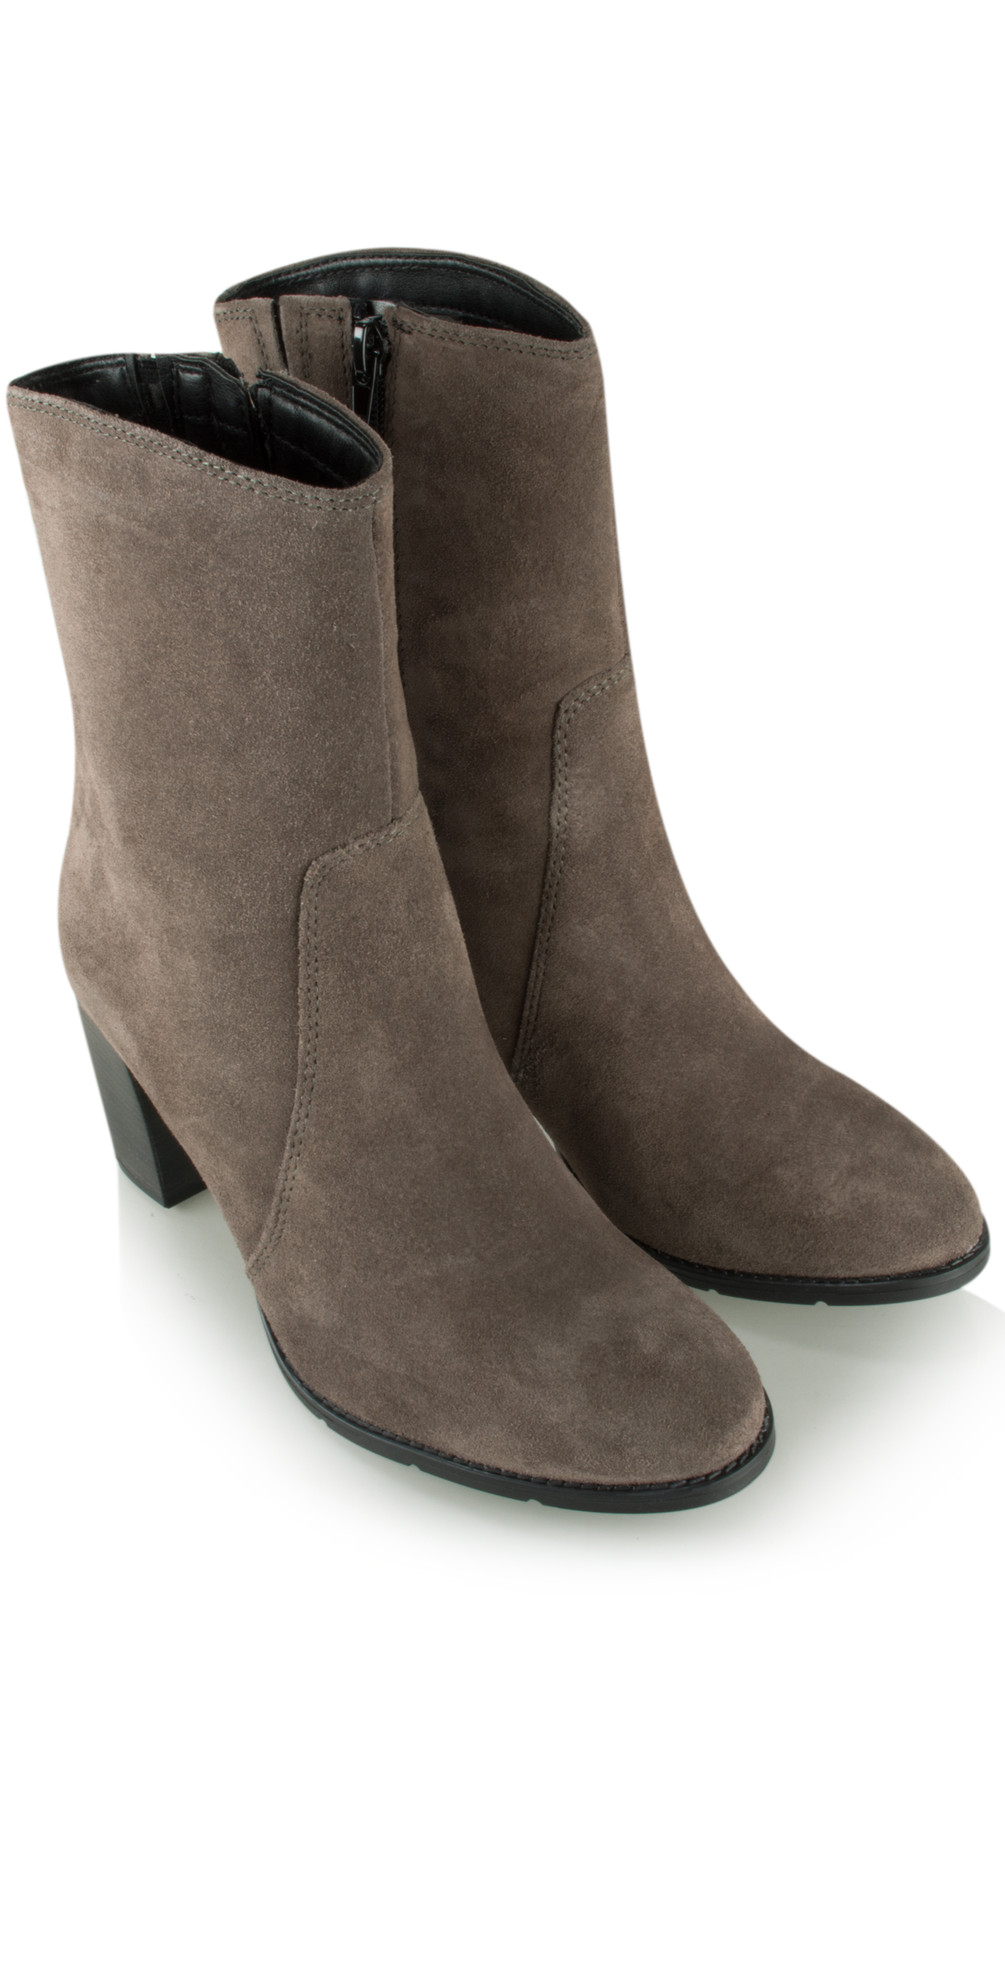 tamaris suede ankle boot in anthracite